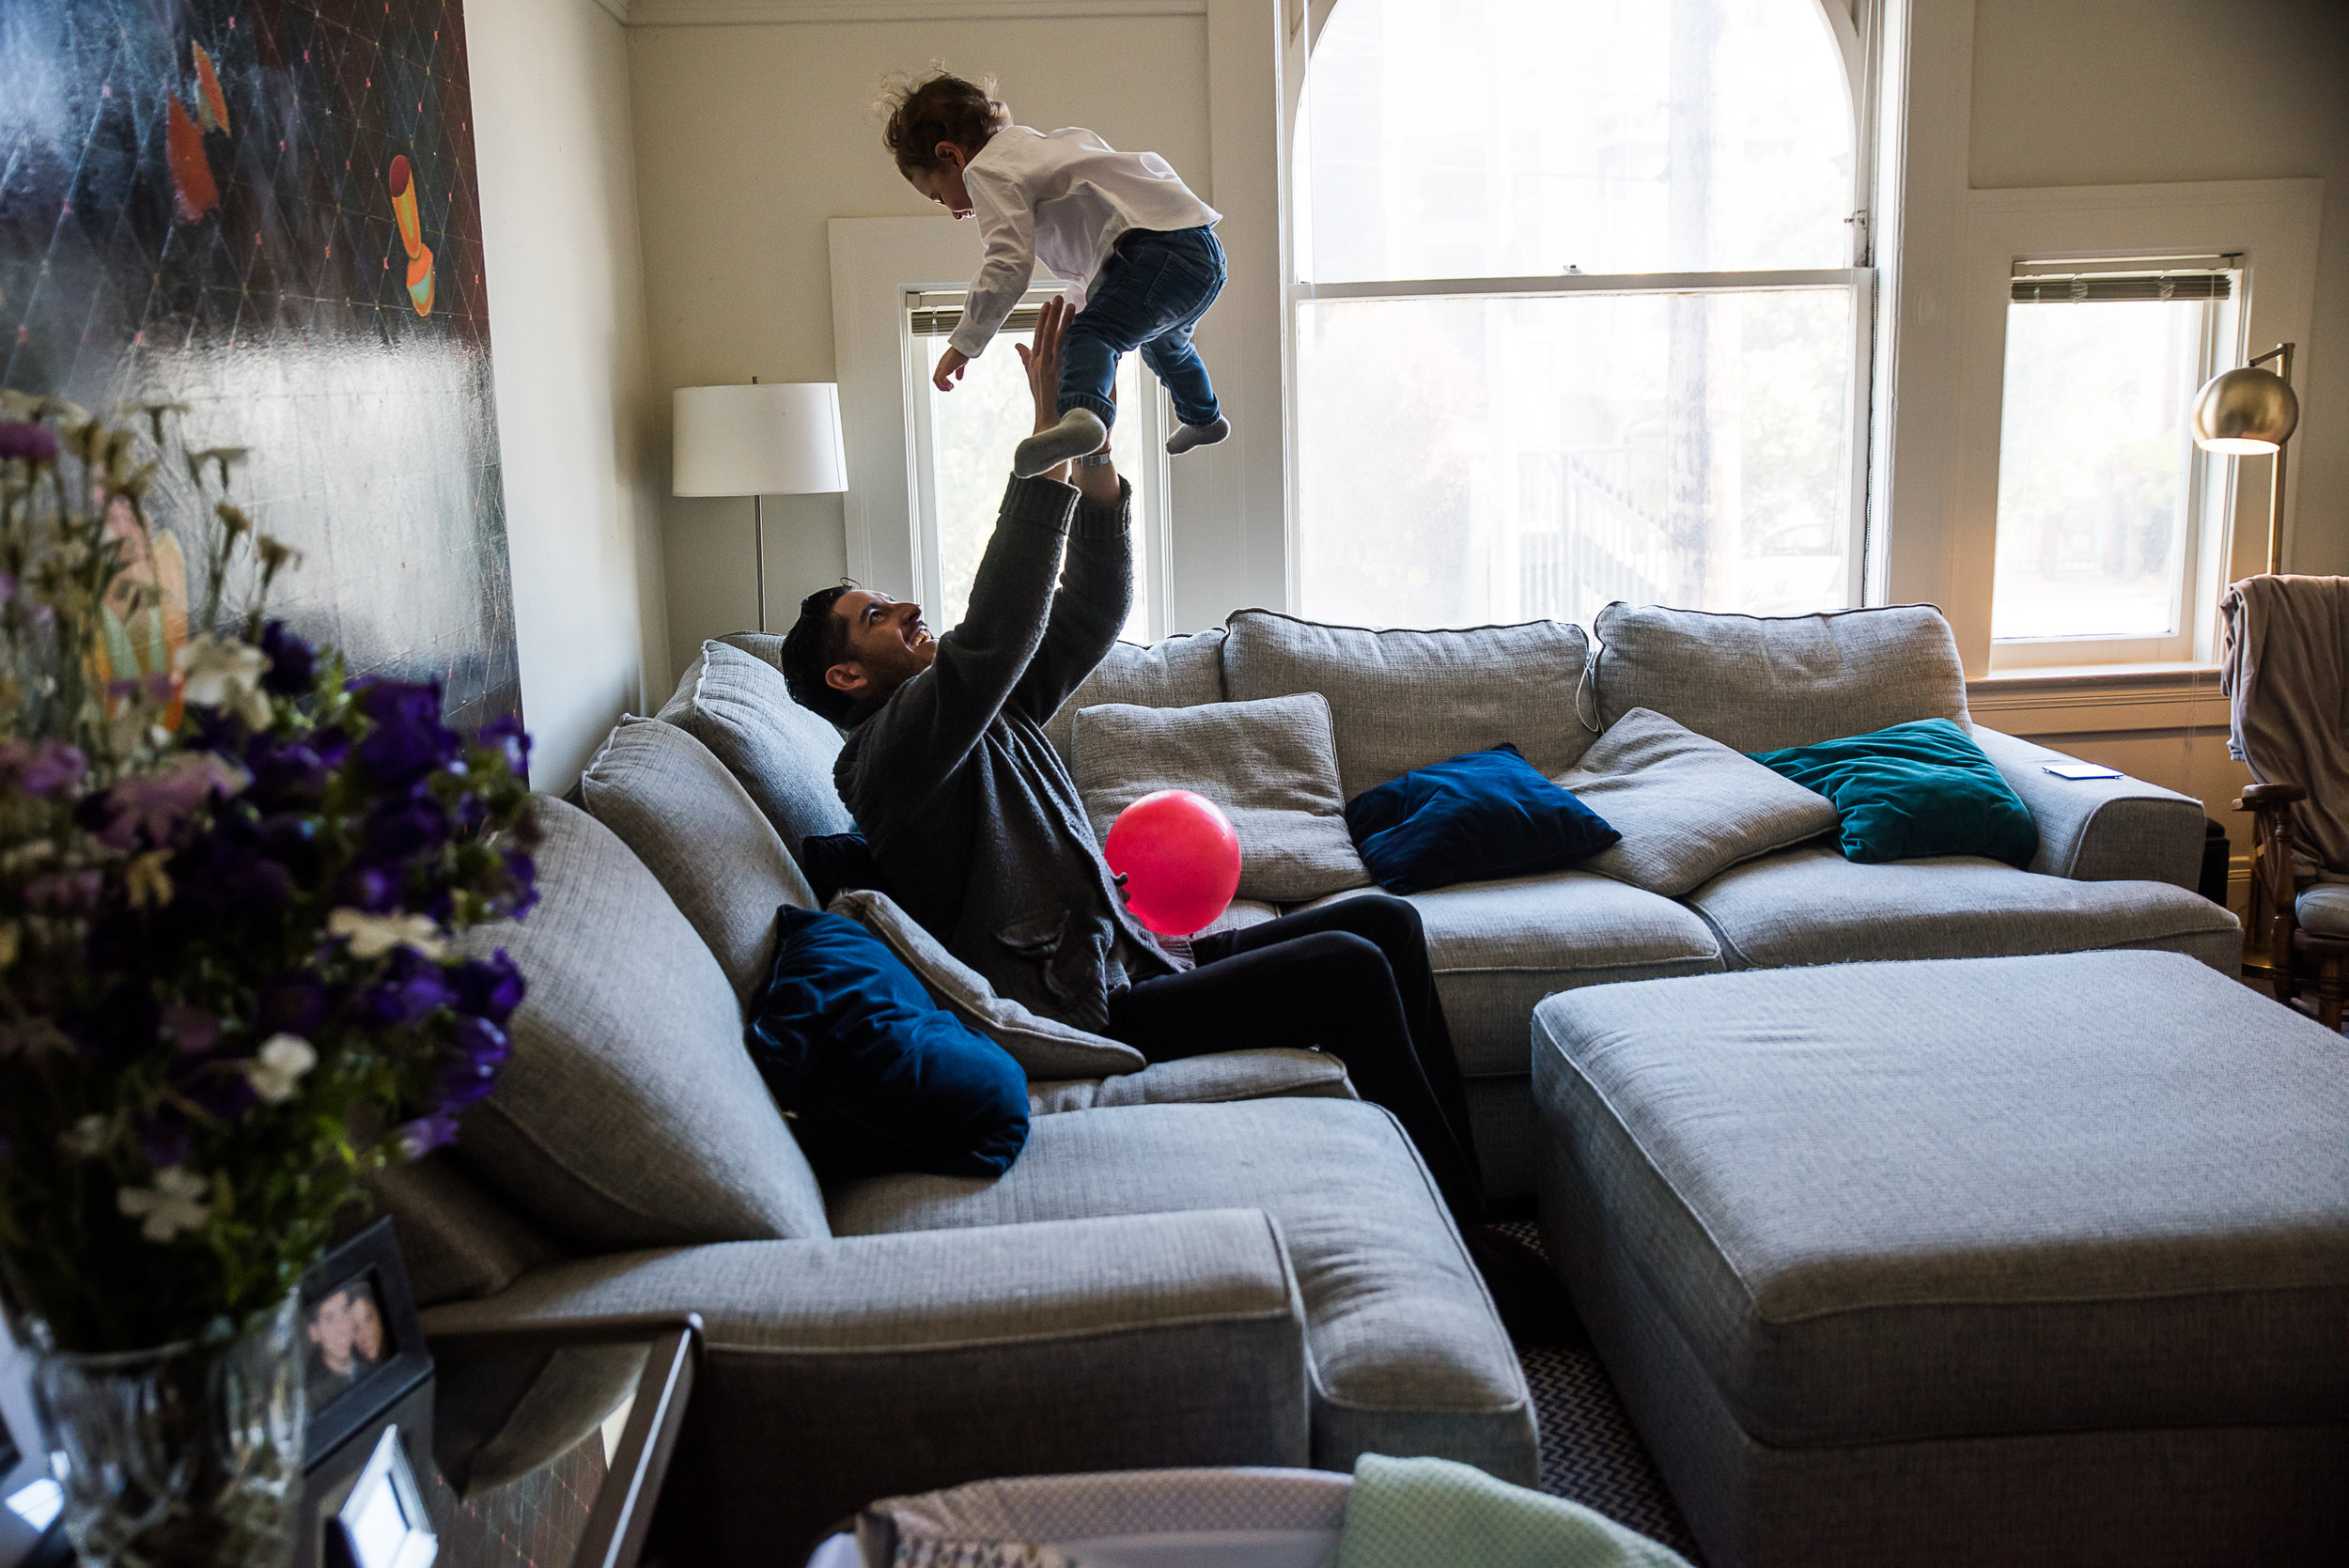 San Francisco Family Photographer, Amanda Anderson, captures family at home with red balloon